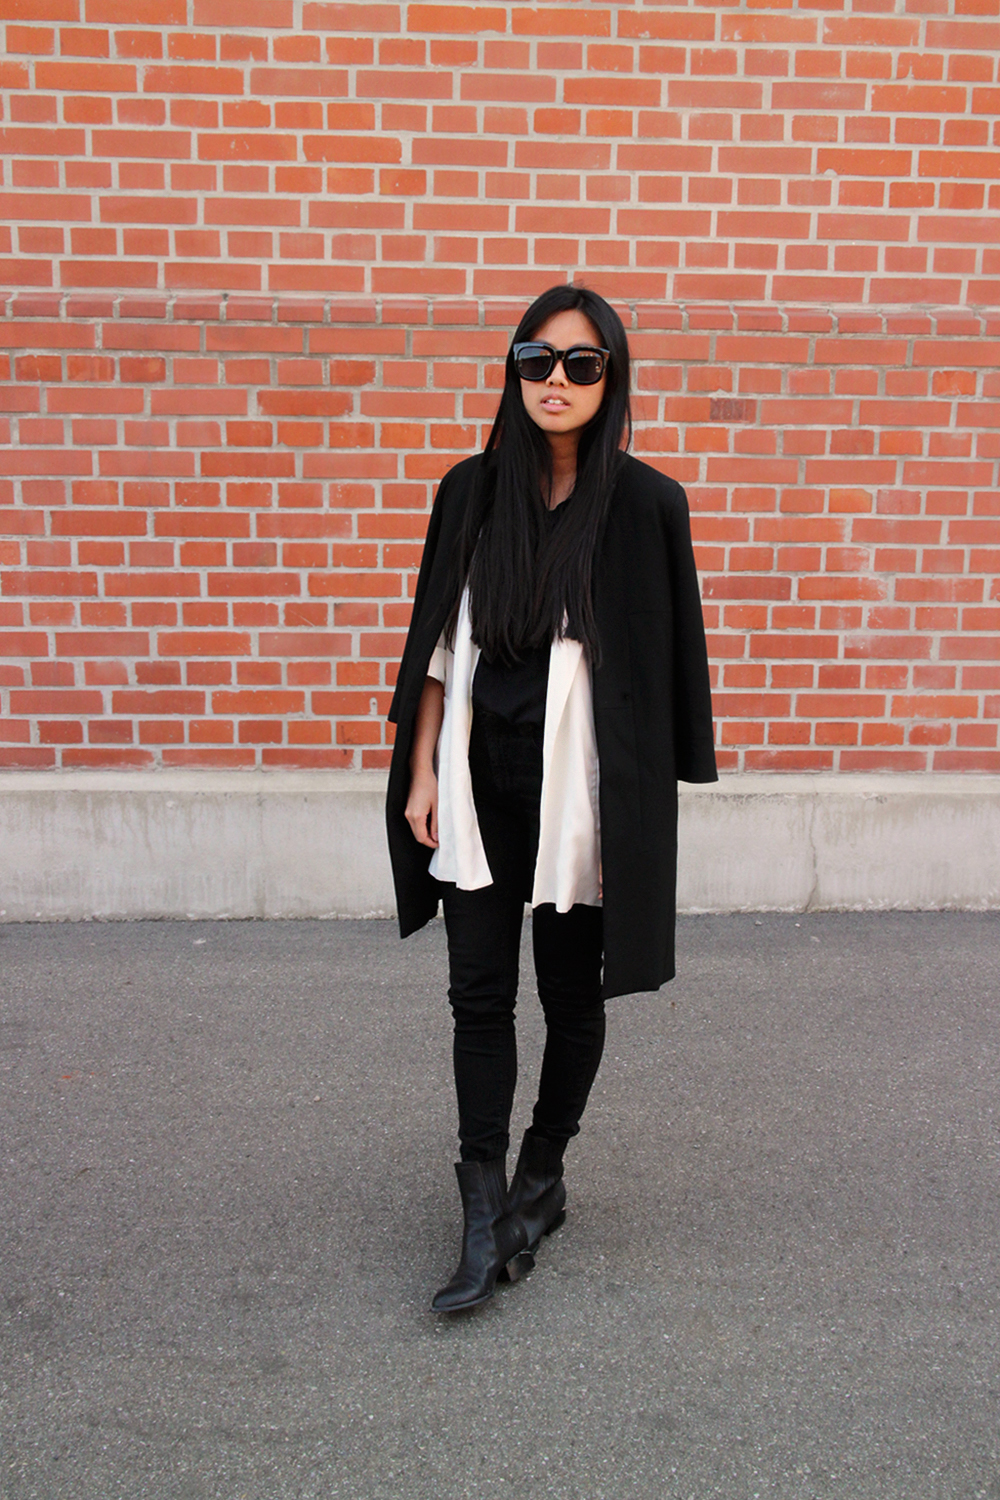 IHEARTALICE.DE – Fashion & Travel-Blog by Alice M. Huynh from Germany: All Black Everything Look wearing Black White Blazer, Skinny Jeans